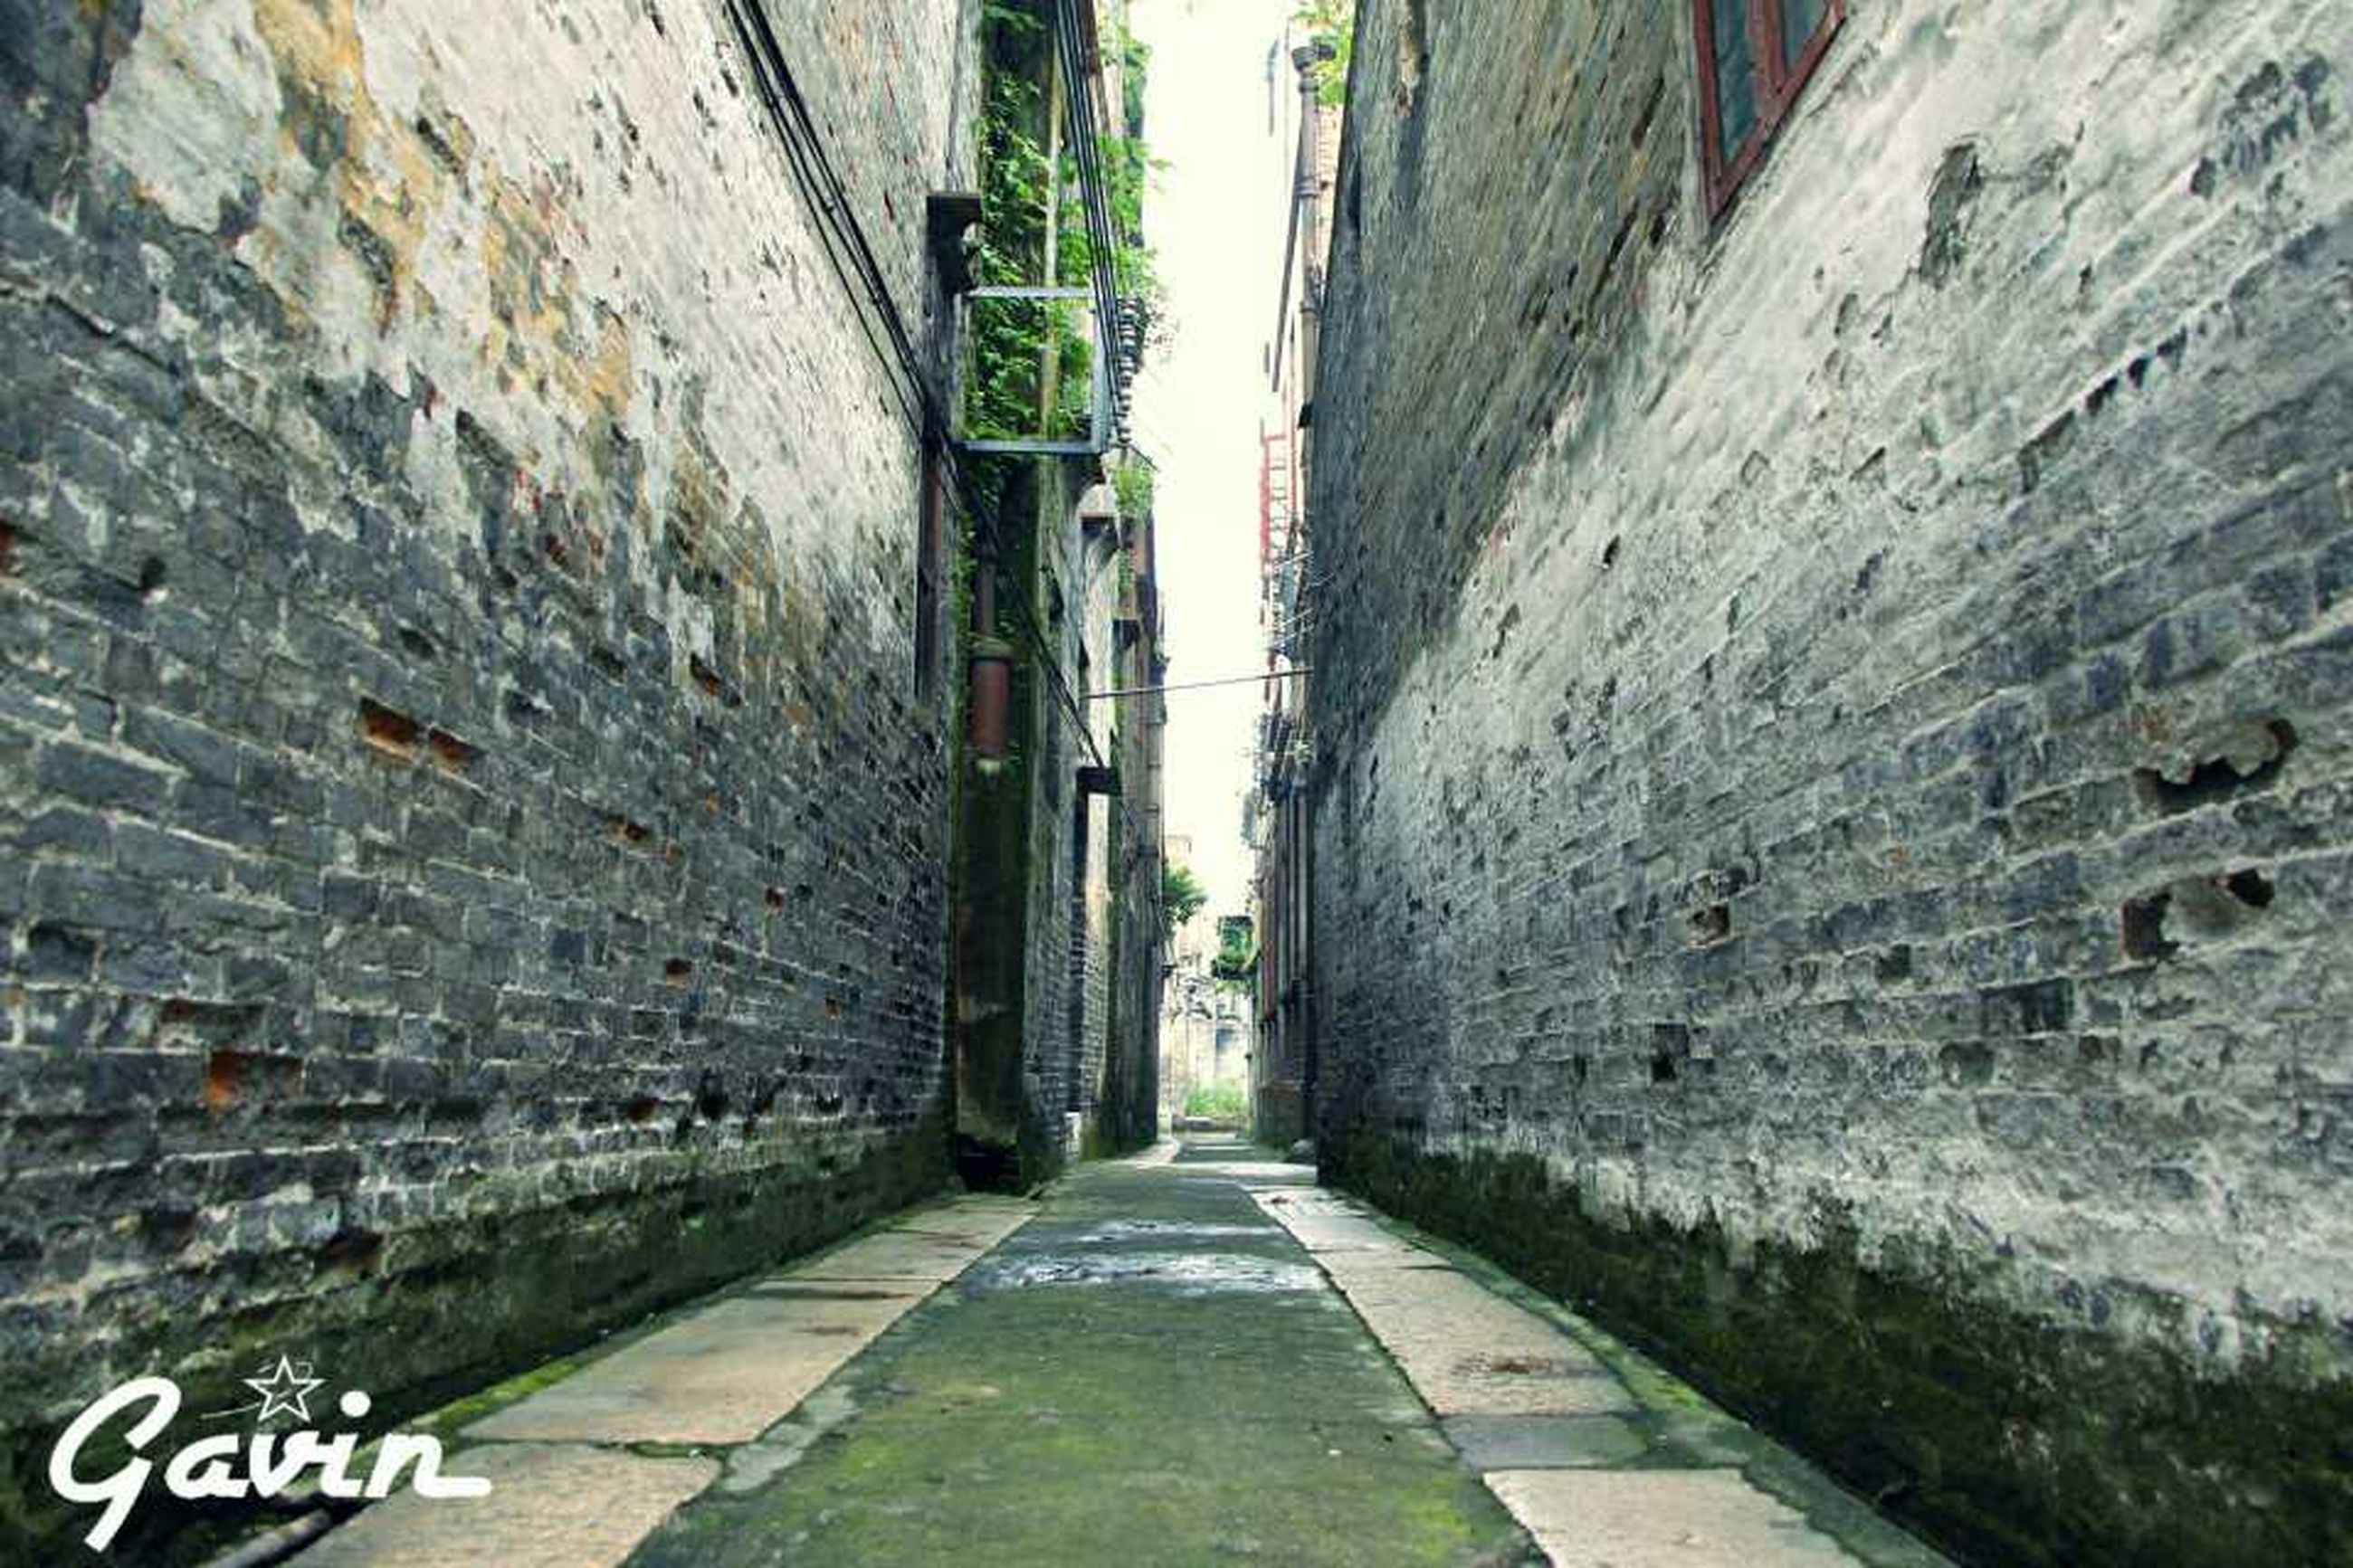 architecture, the way forward, built structure, building exterior, diminishing perspective, street, transportation, vanishing point, road, narrow, building, wall - building feature, city, alley, road marking, day, residential structure, long, empty, outdoors